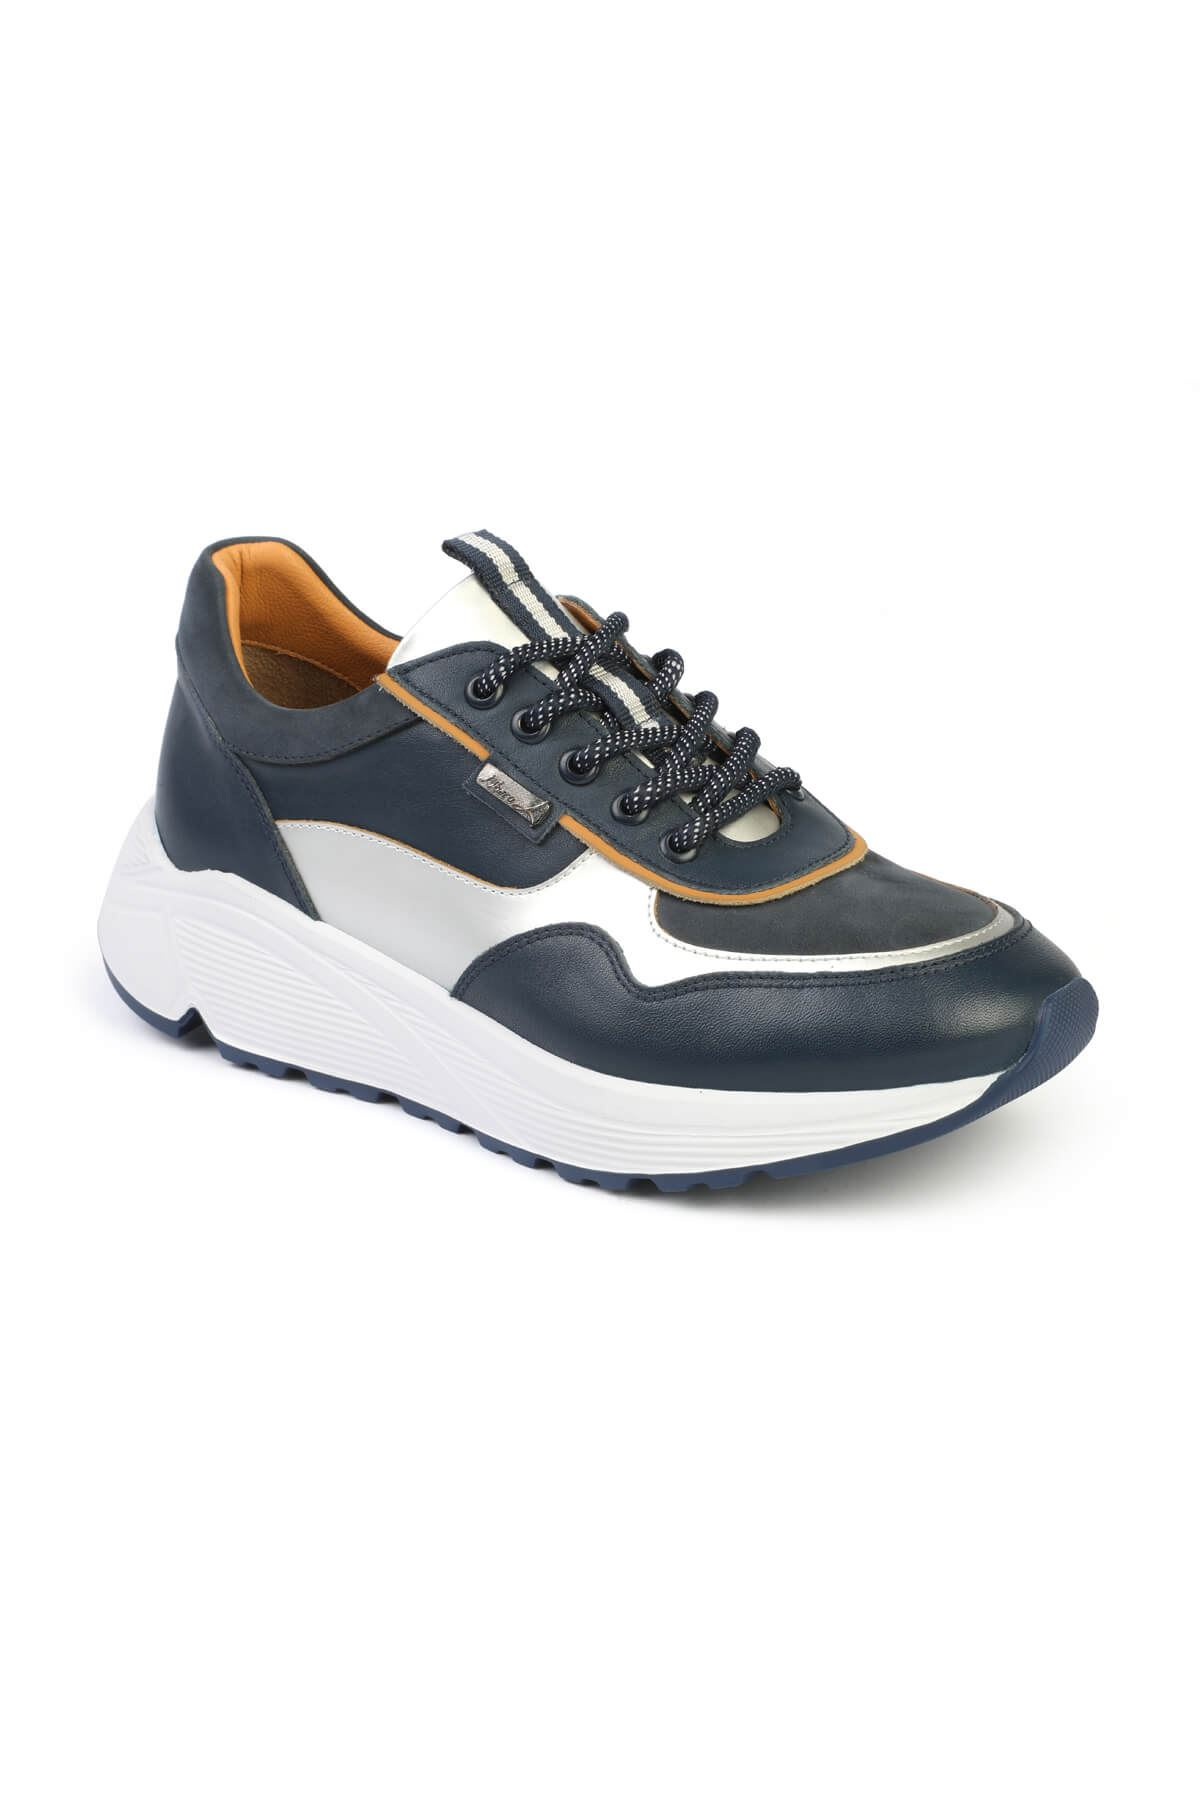 Libero 3158 L.Gray Sports Shoes